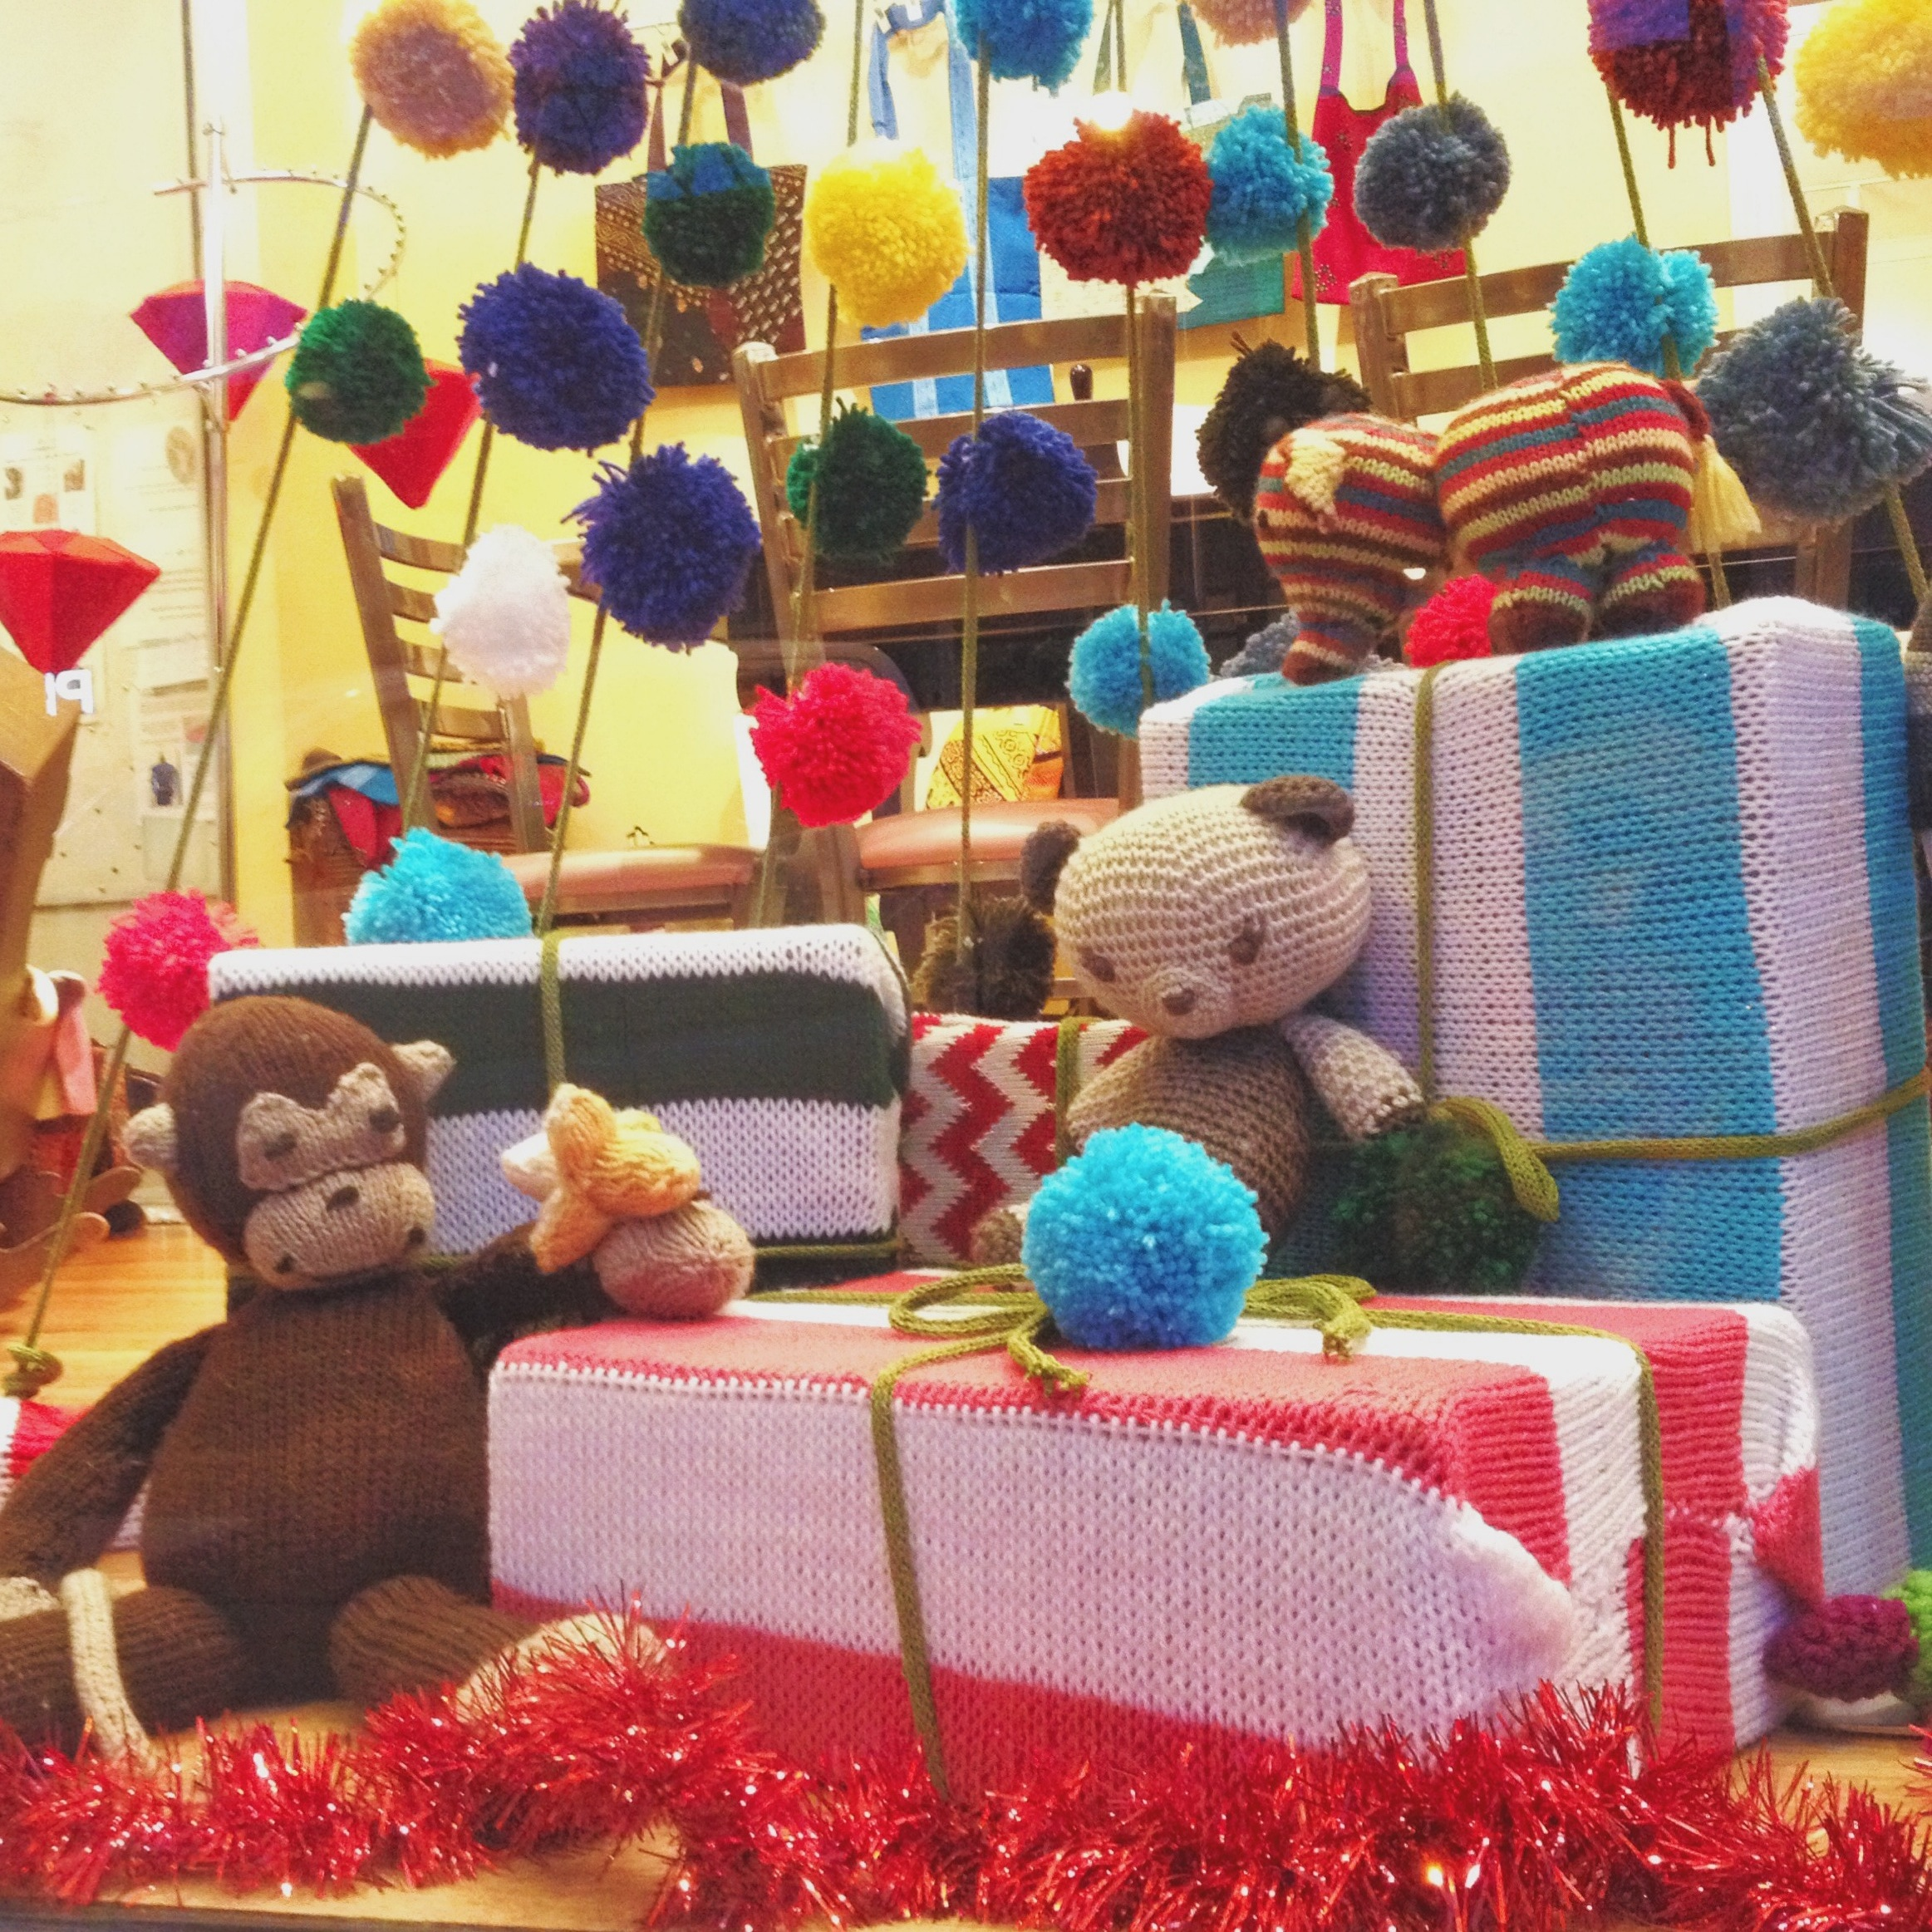 We Knit a Window Display for our Local Yarn Shop KNITS FOR LIFE